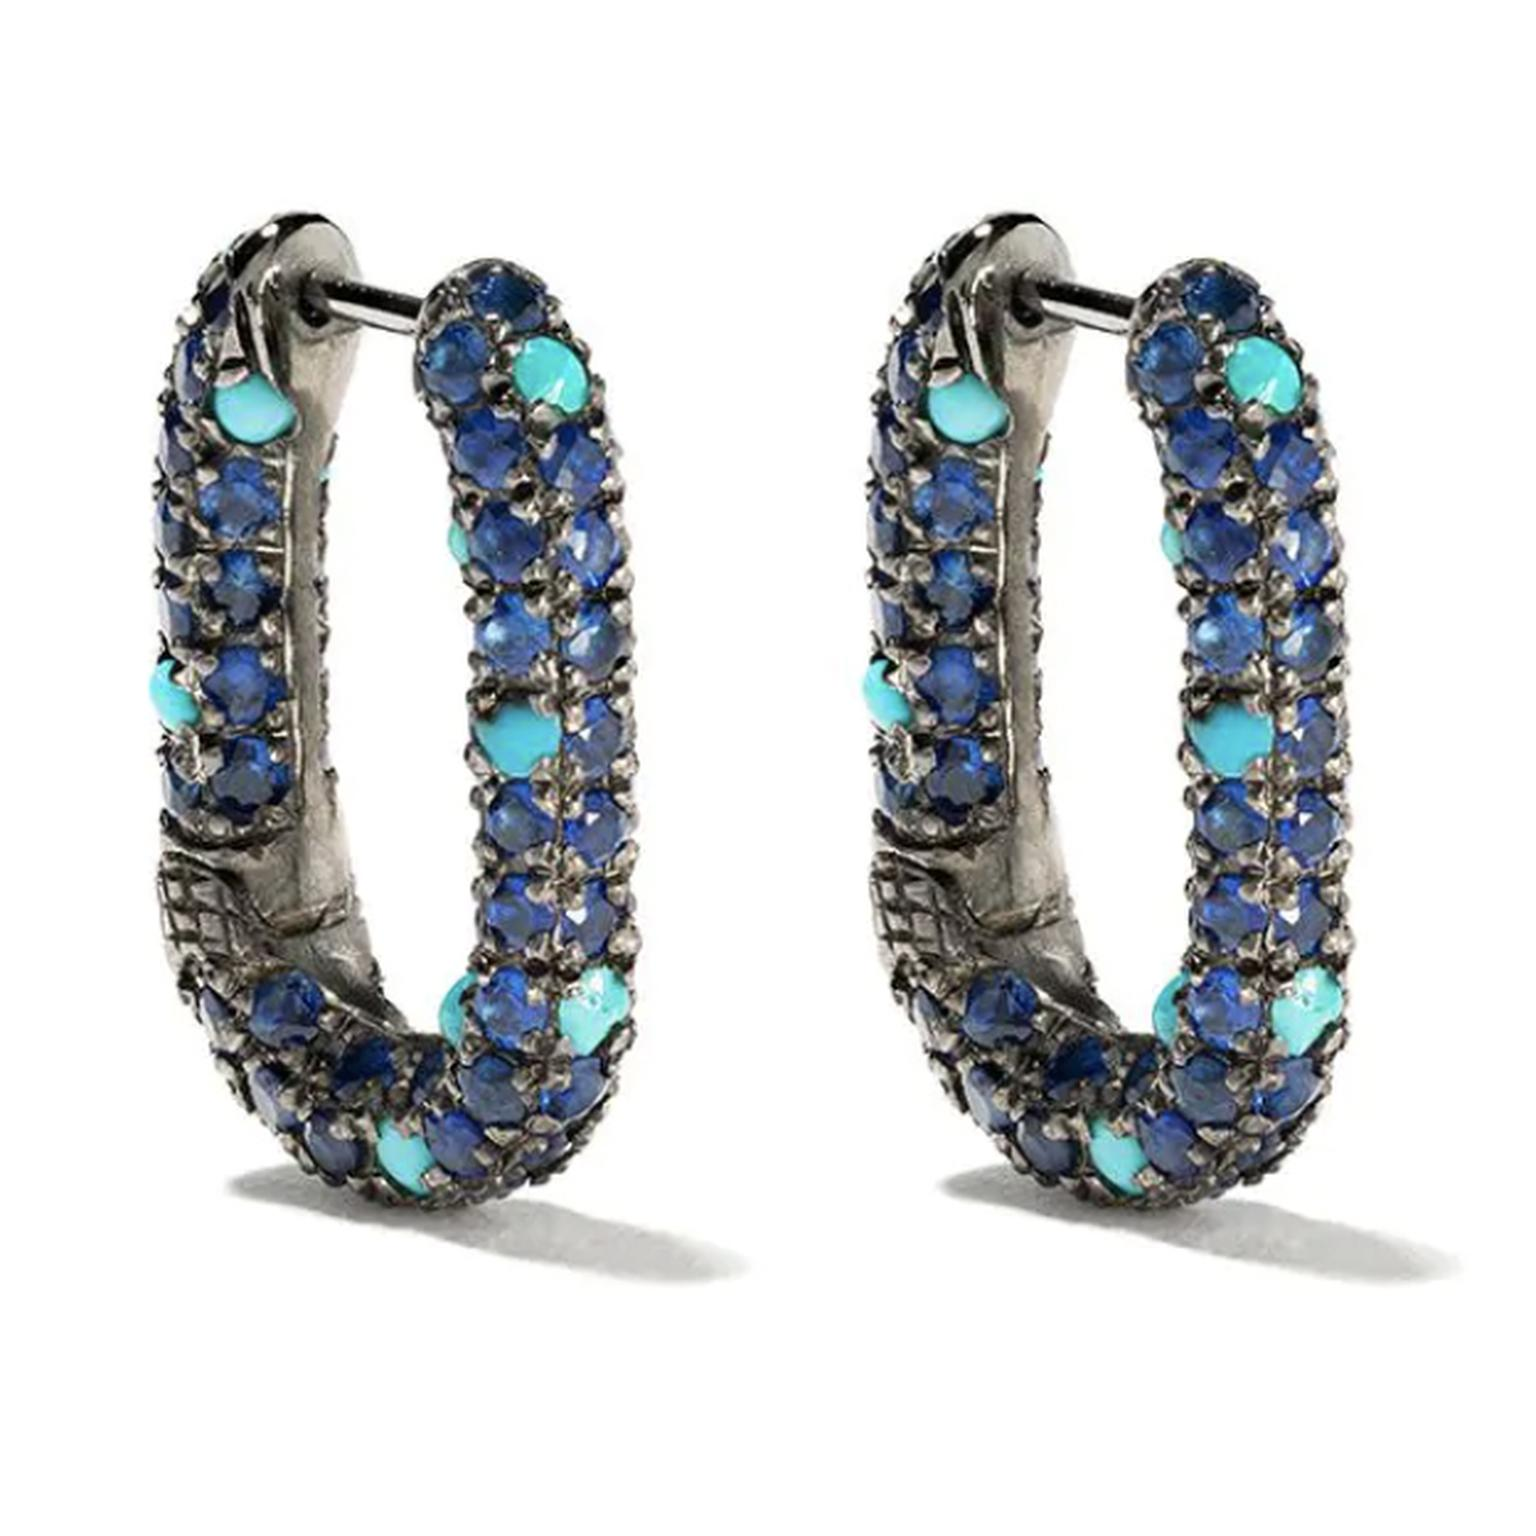 Turquoise and sapphire earrings by Selim Mouzannar